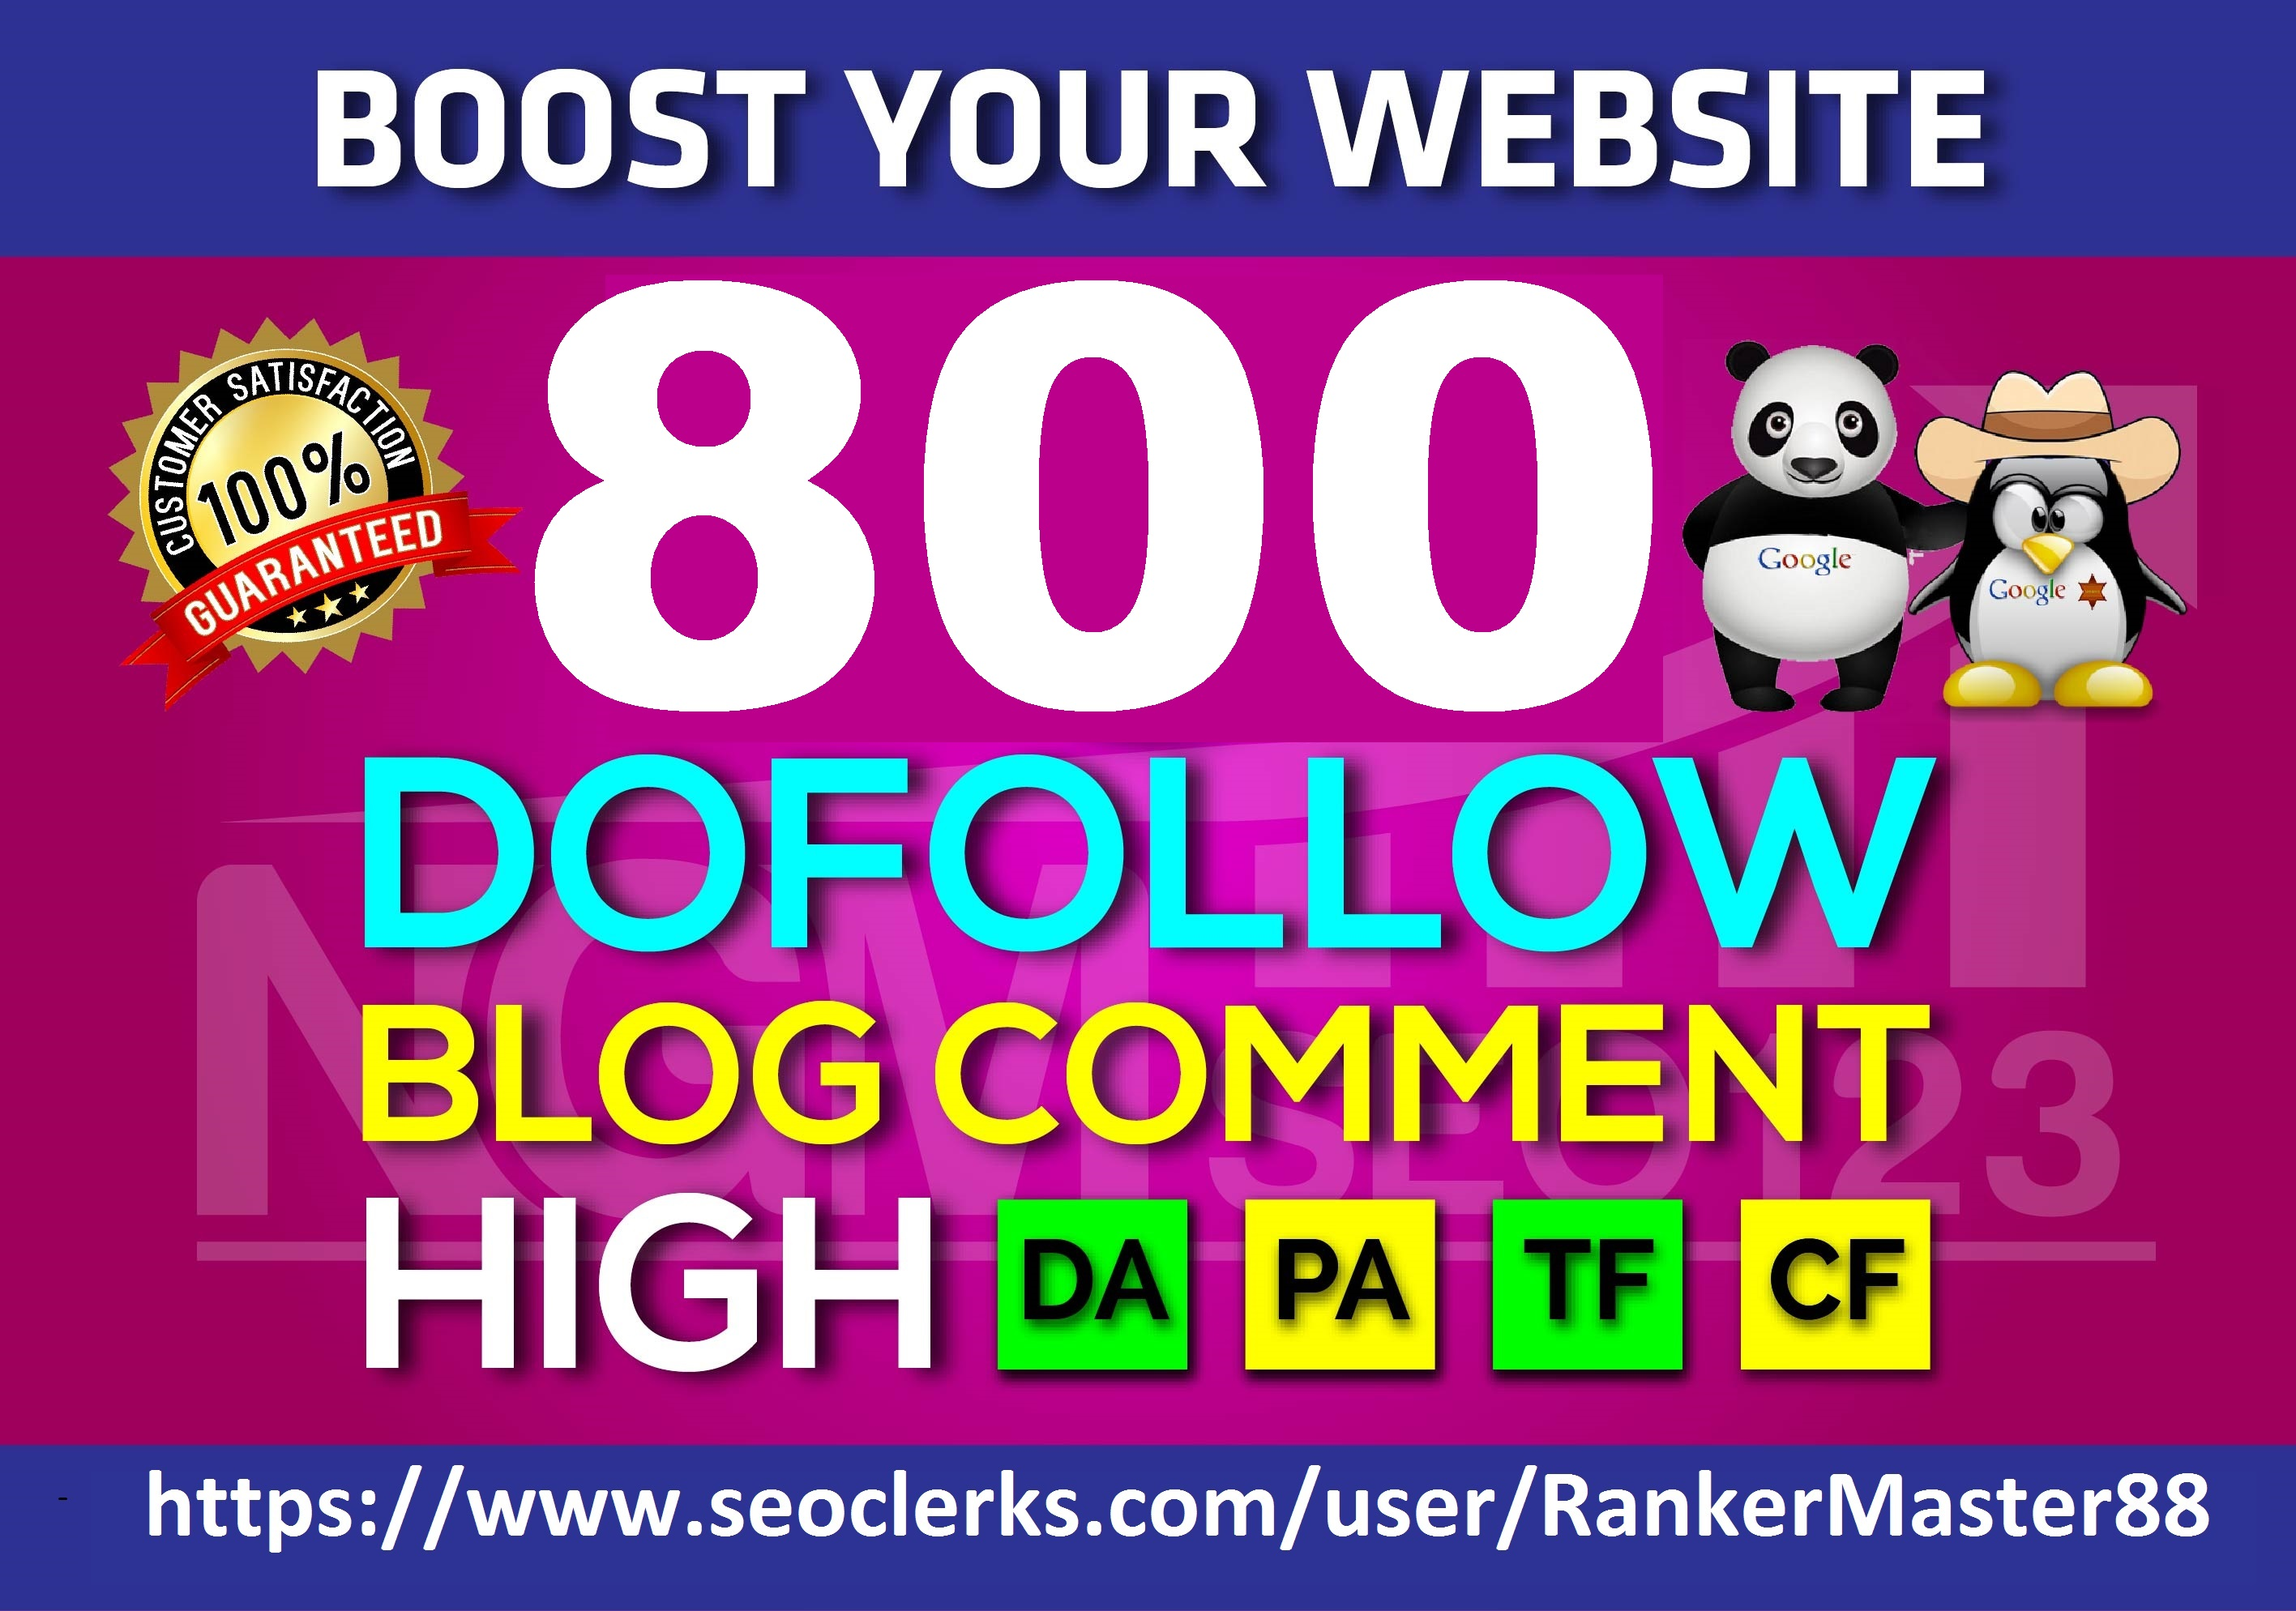 I Will Create 800 Dofollow Blog C0mments Backlinks Manually On High DA PA